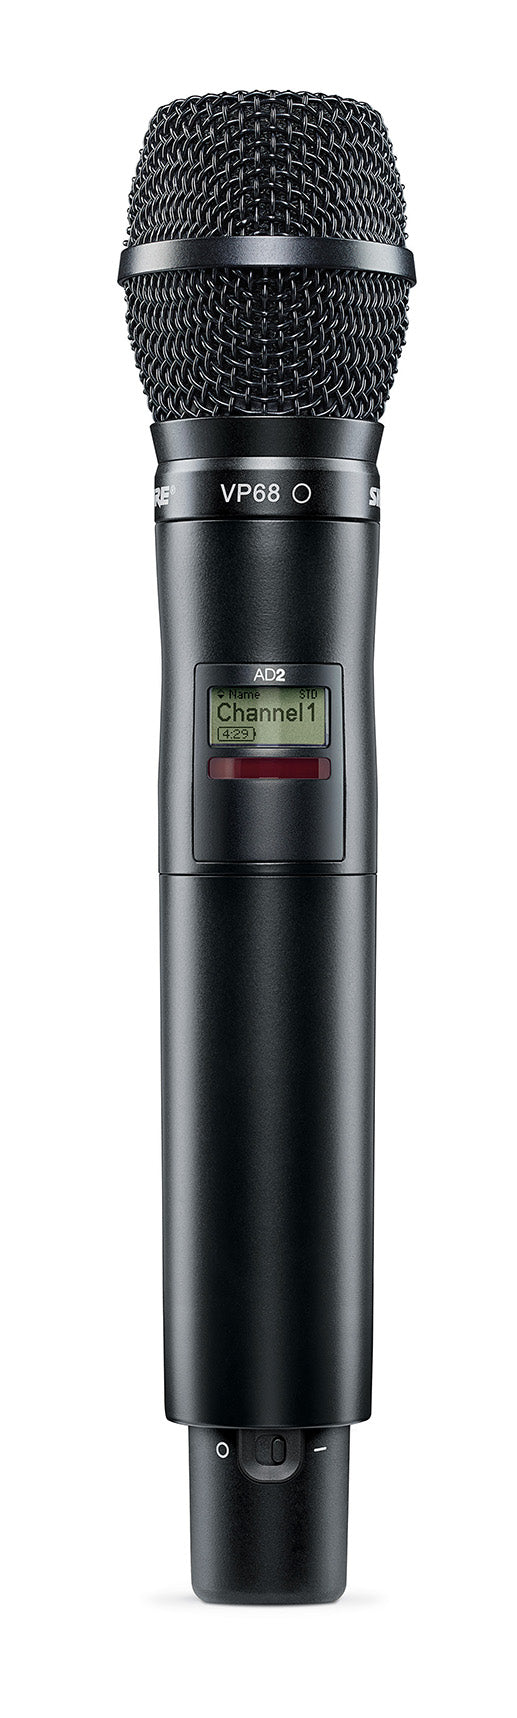 Shure AD2/VP68 Axient Digital Handheld Transmitter W/ VP68 Cartridge